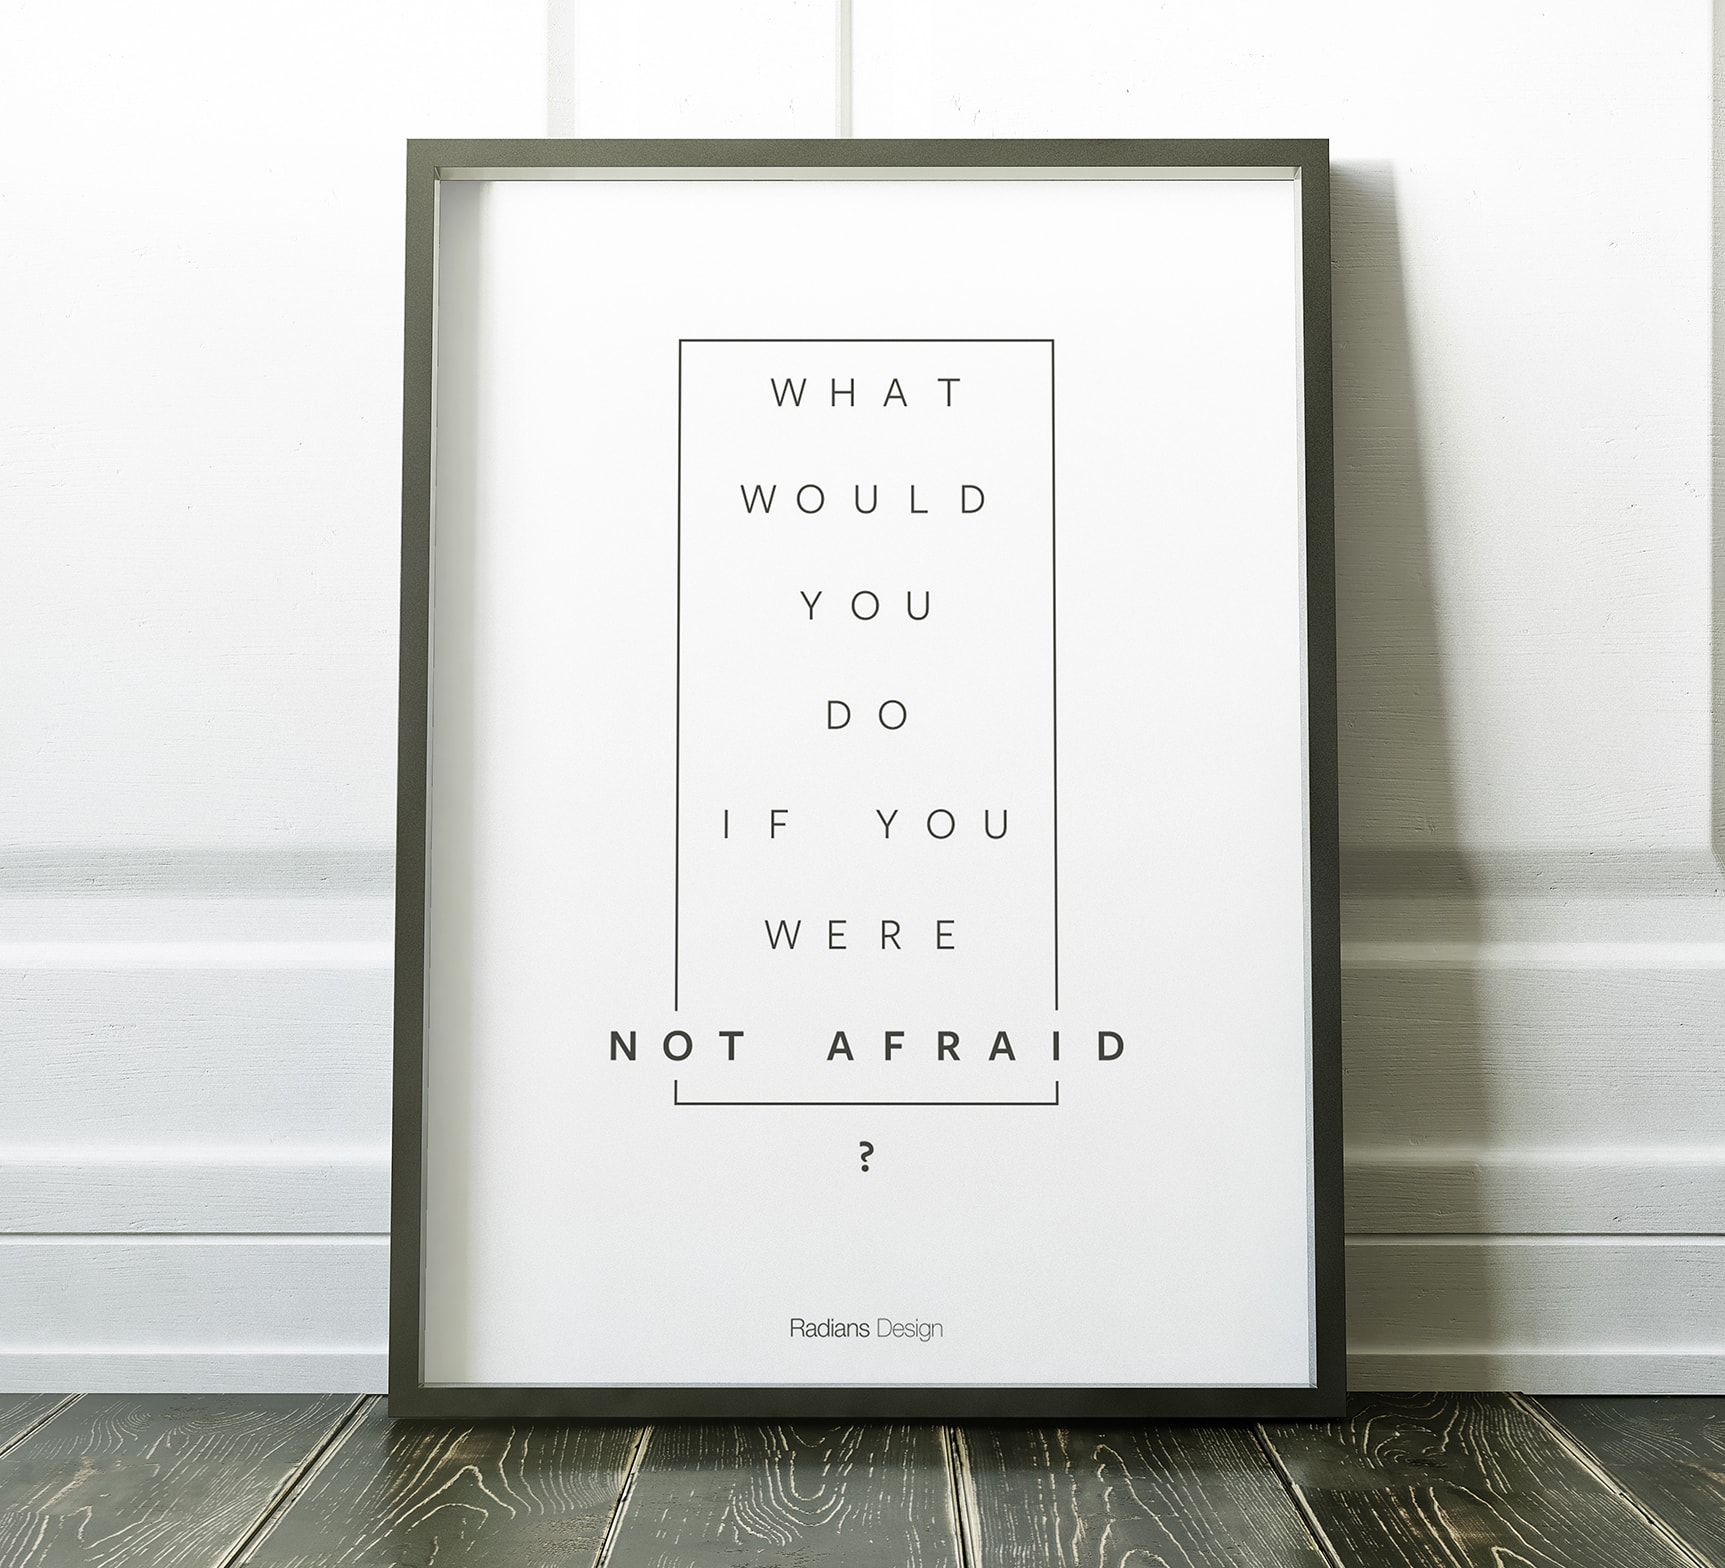 [Image]What would you do if you were not afraid?